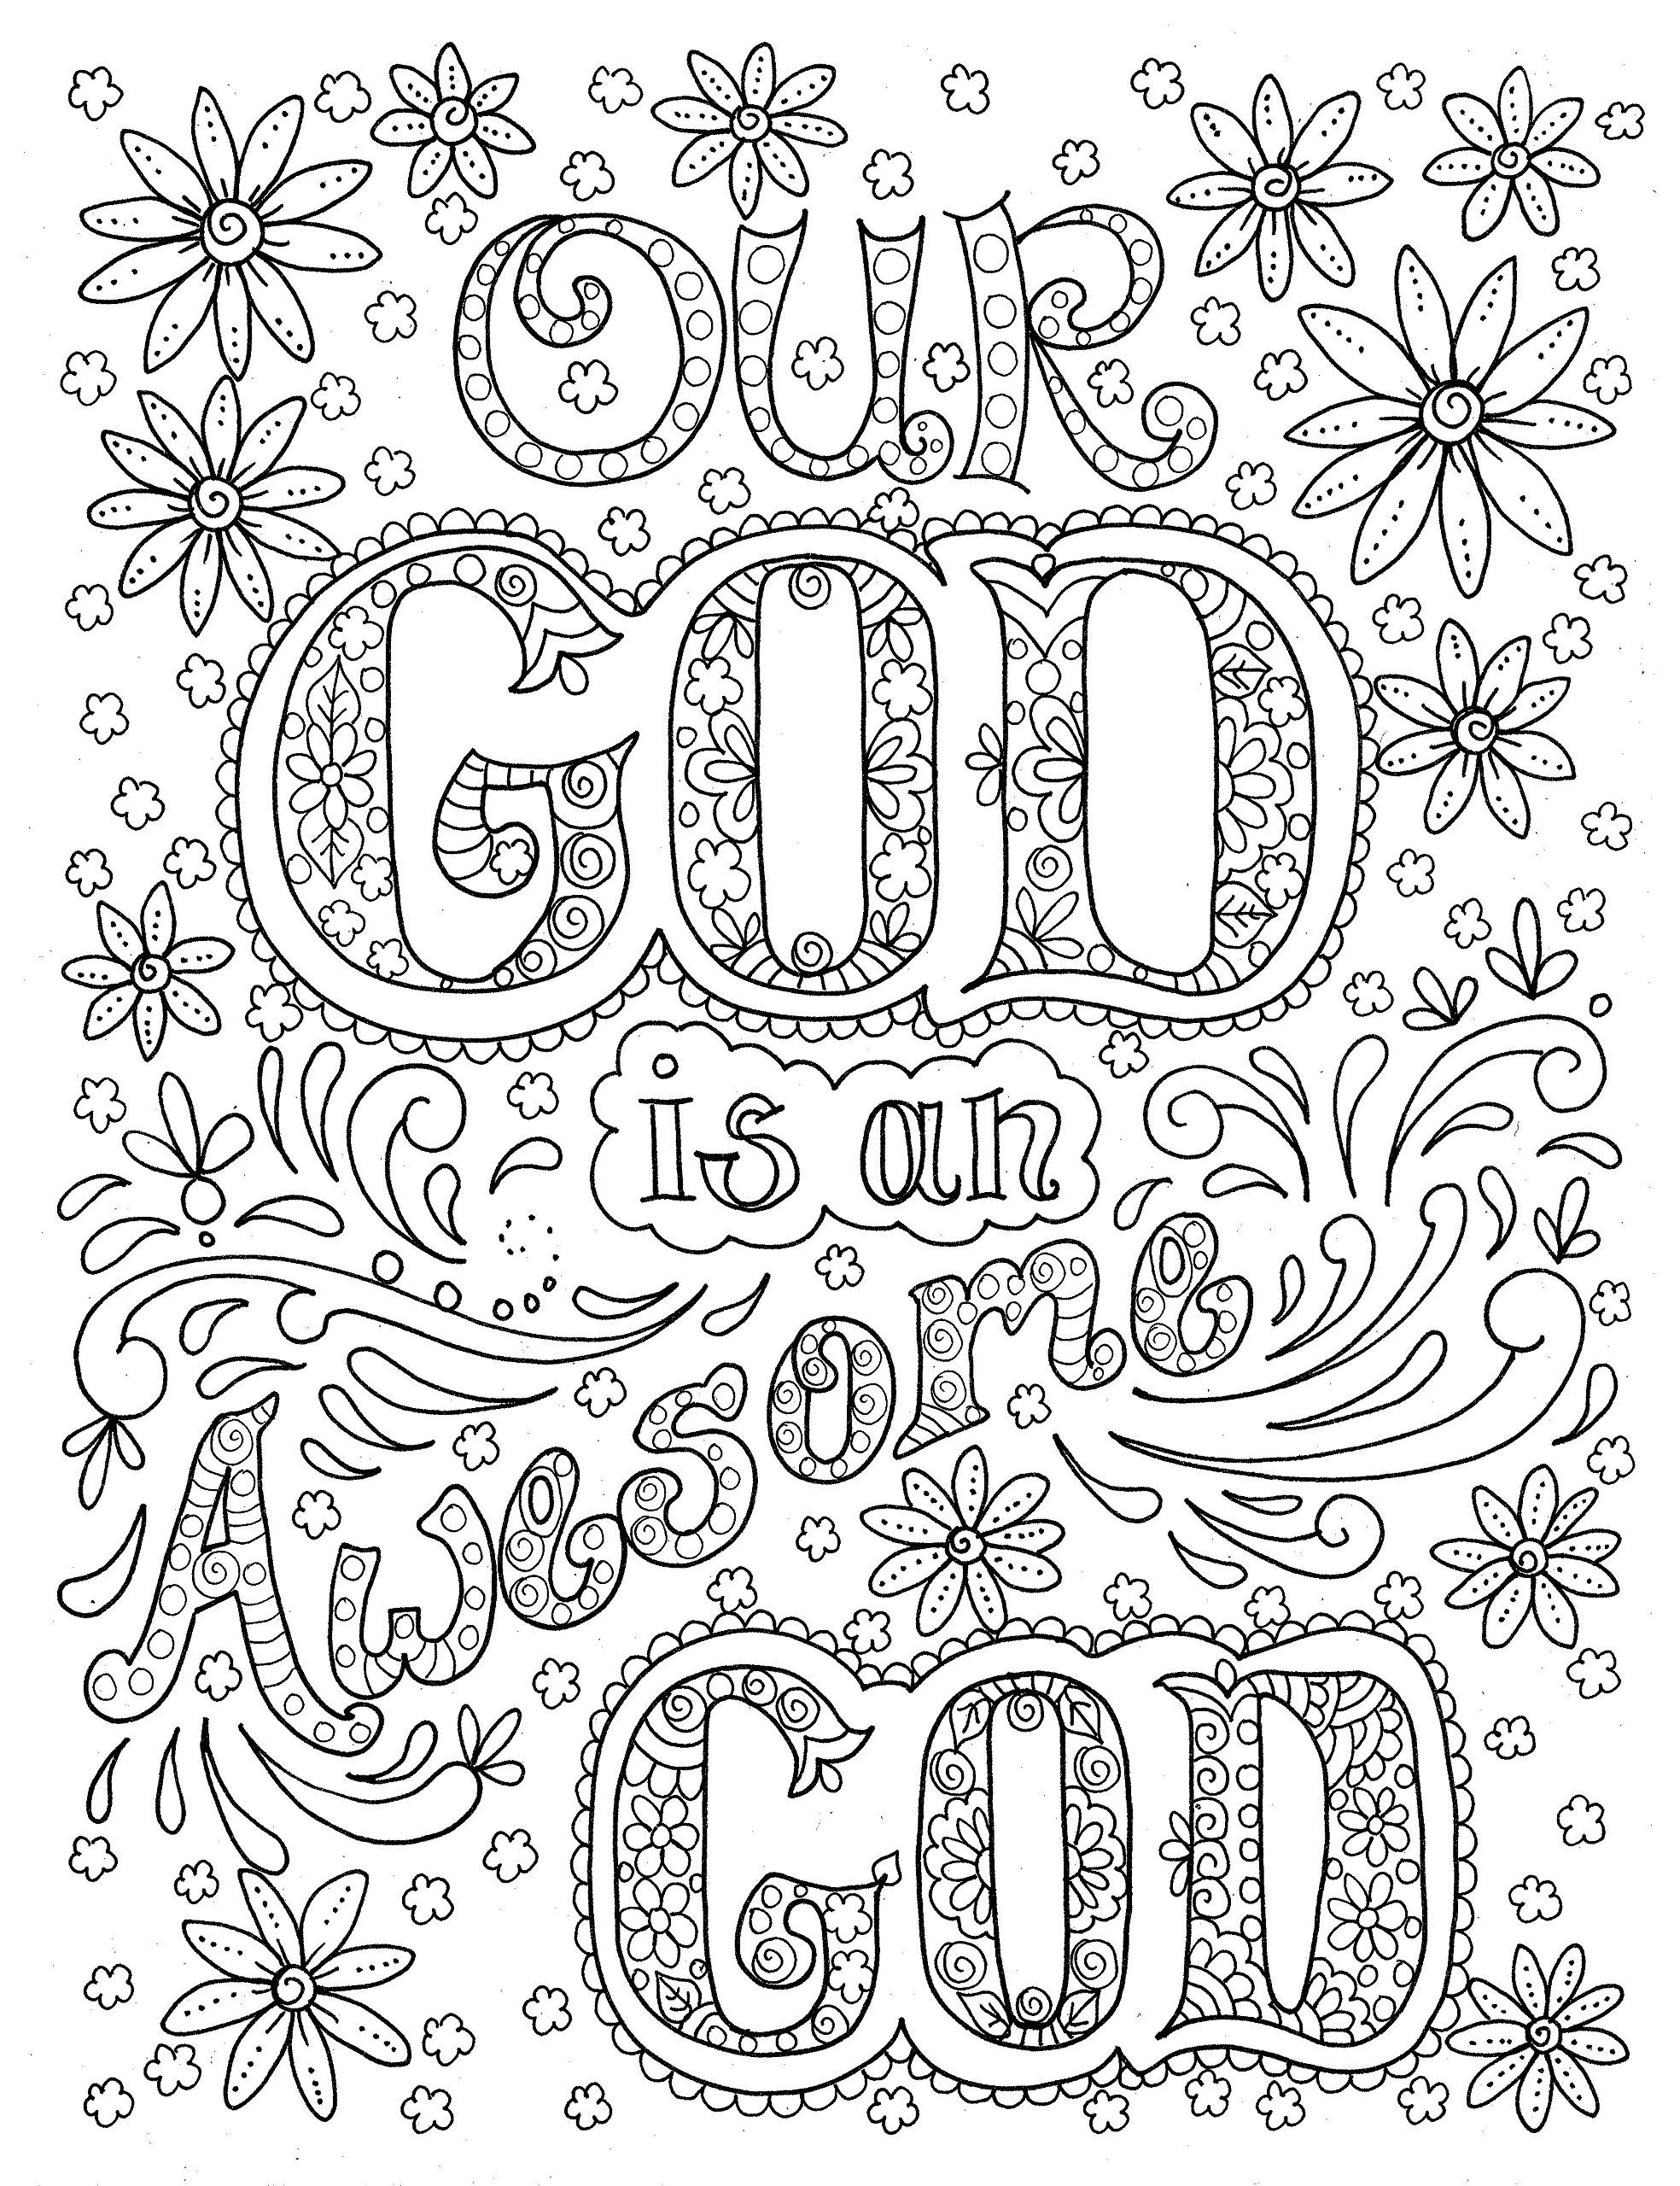 - Worship Coloring Book: Deborah Muller: (With Images) School